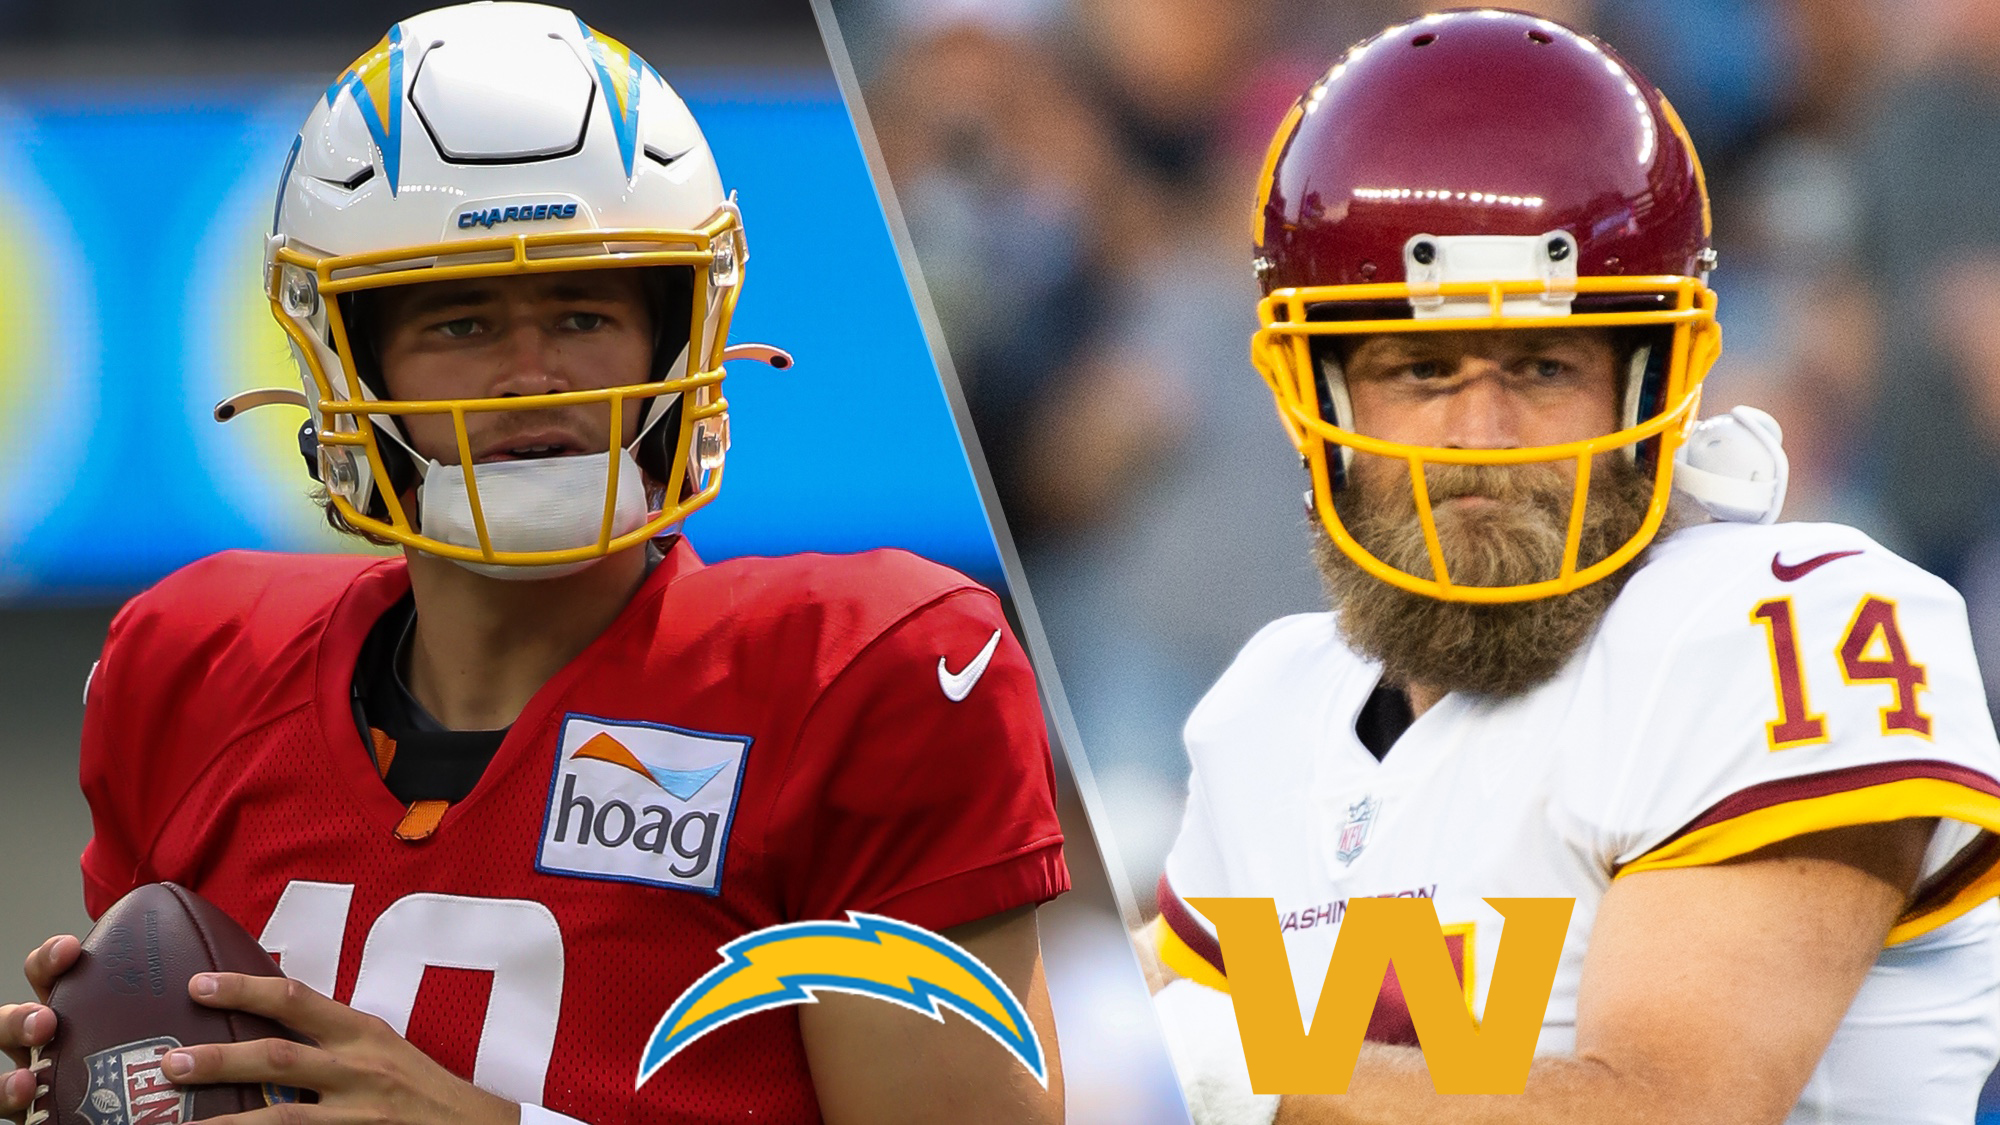 Chargers vs. Washington Live Stream Free: How to Watch NFL Week 1 Without Reddit